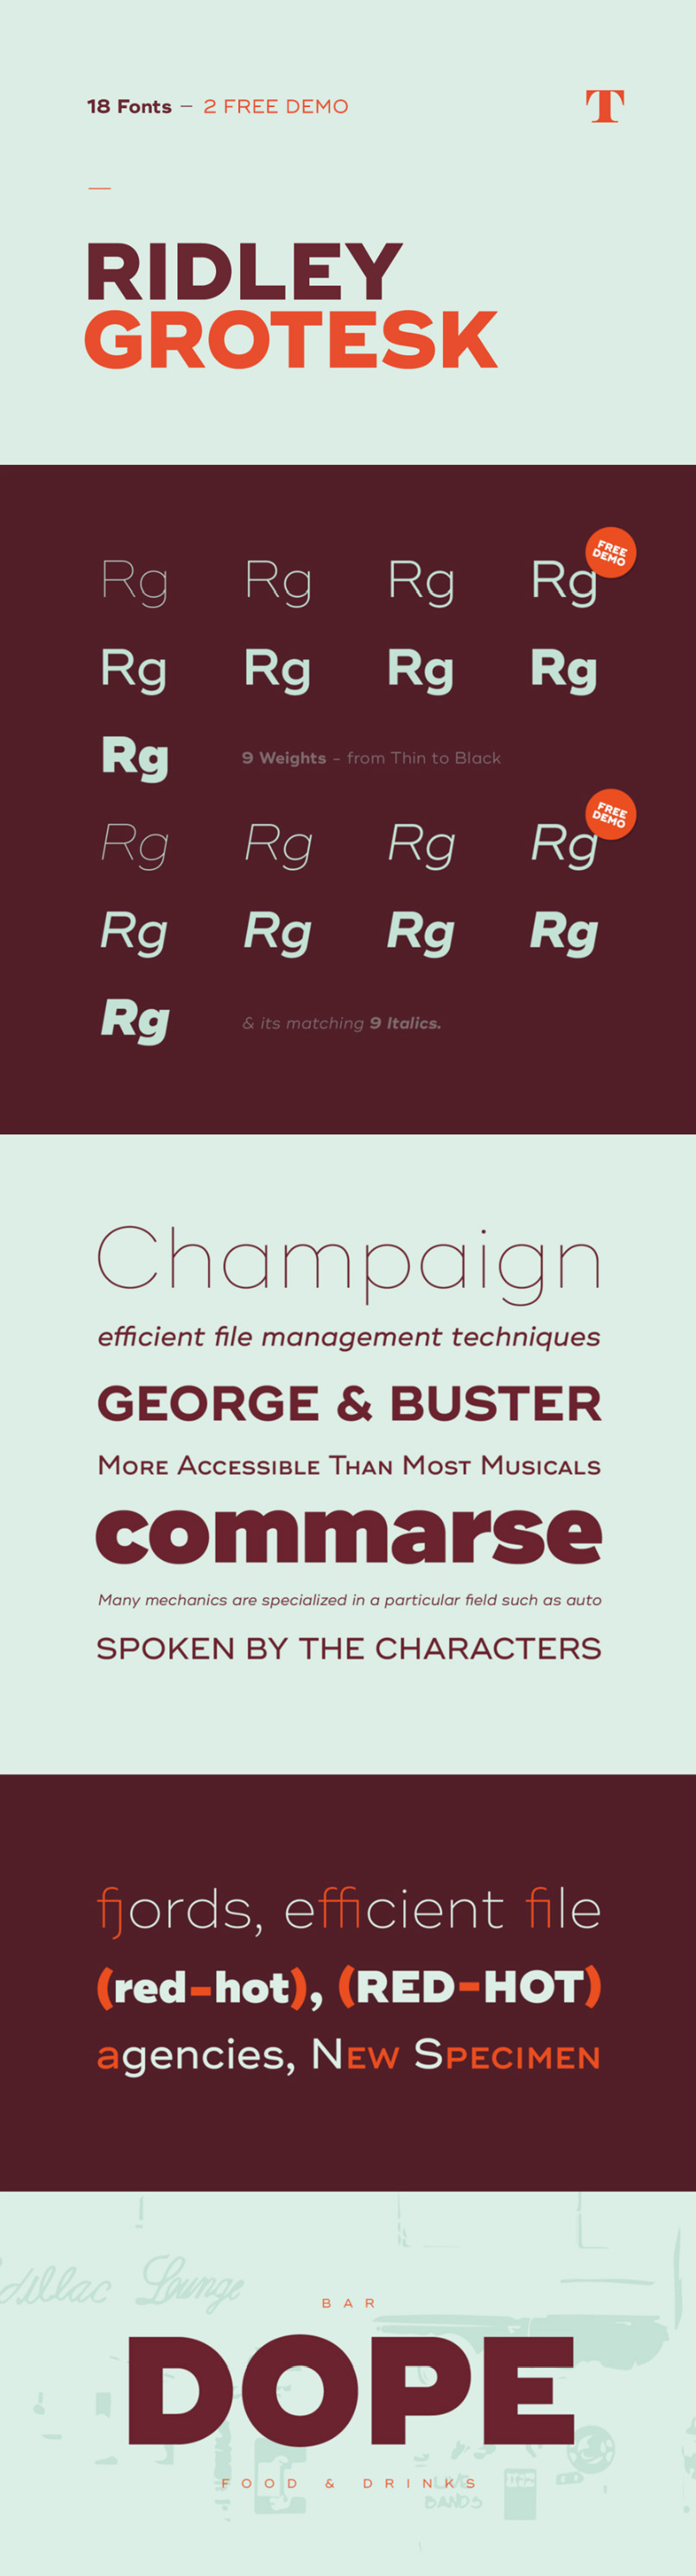 Ridley Grotesk font download Fonts in 2019 Typography fonts